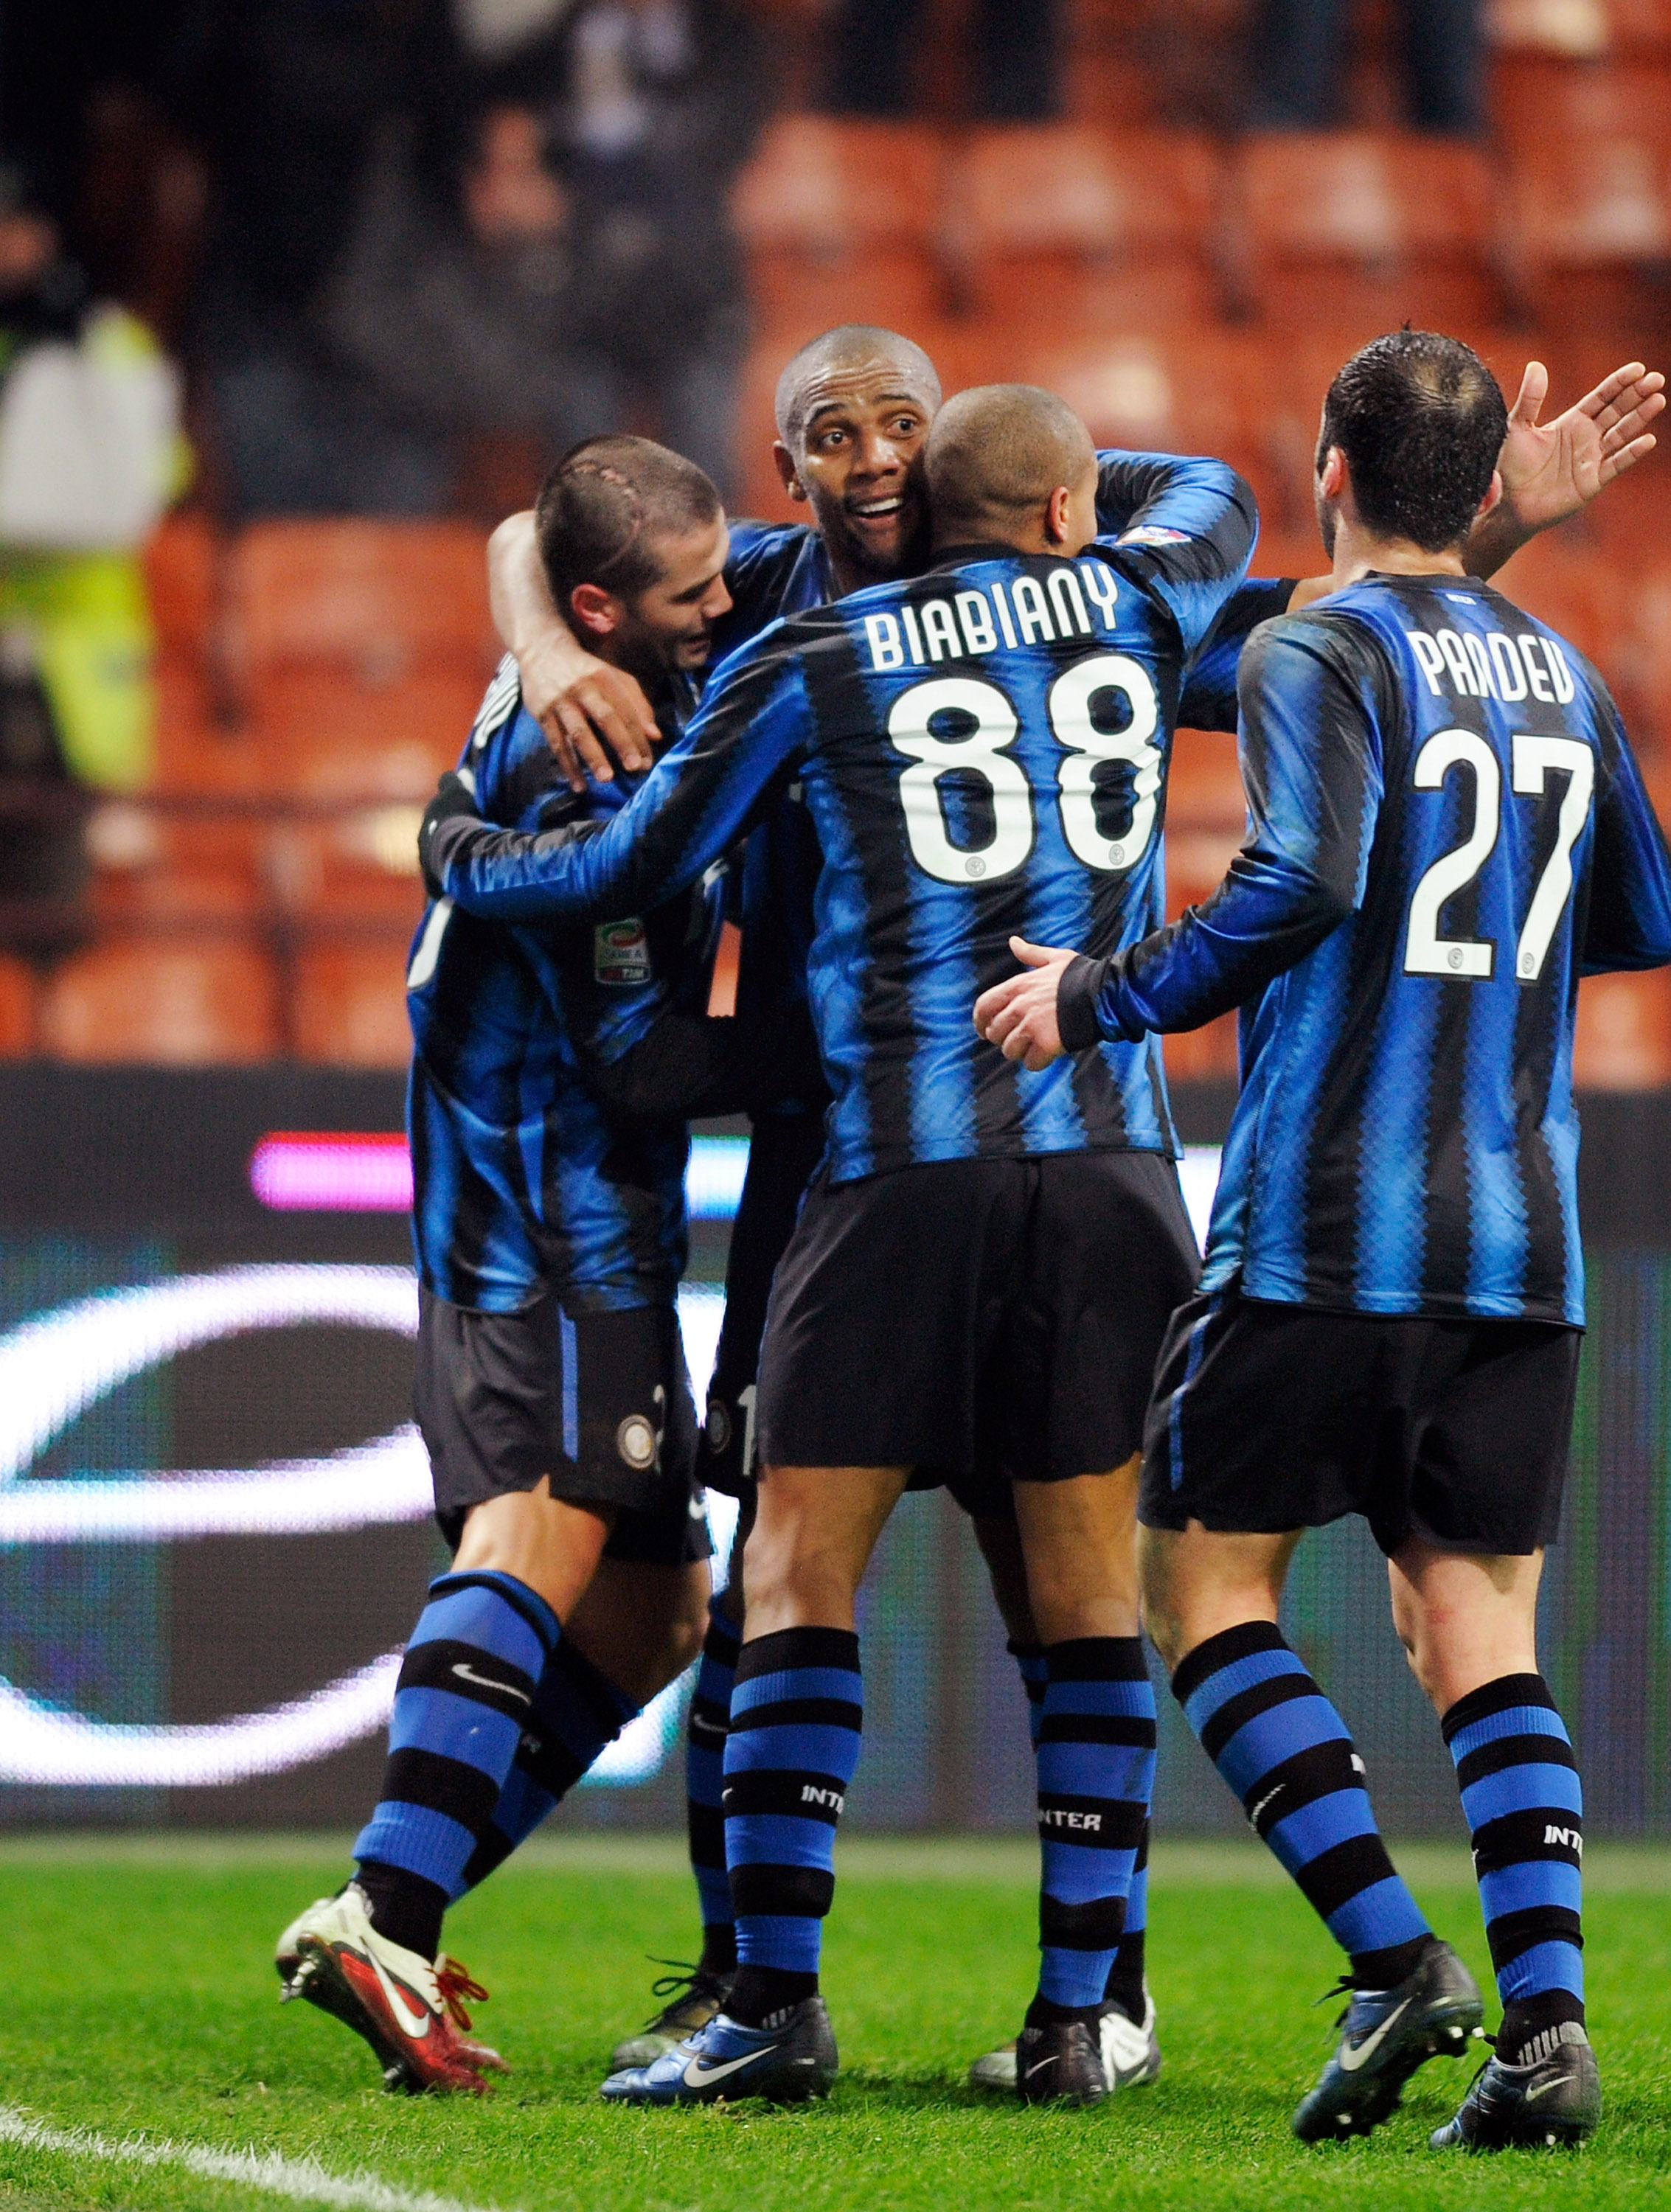 MILAN, ITALY - JANUARY 19:  Cristian Chivu (L) of Inter Milan celebrates scoring the third goal during the Serie A match between Inter and Cesena at Stadio Giuseppe Meazza on January 19, 2011 in Milan, Italy.  (Photo by Claudio Villa/Getty Images)